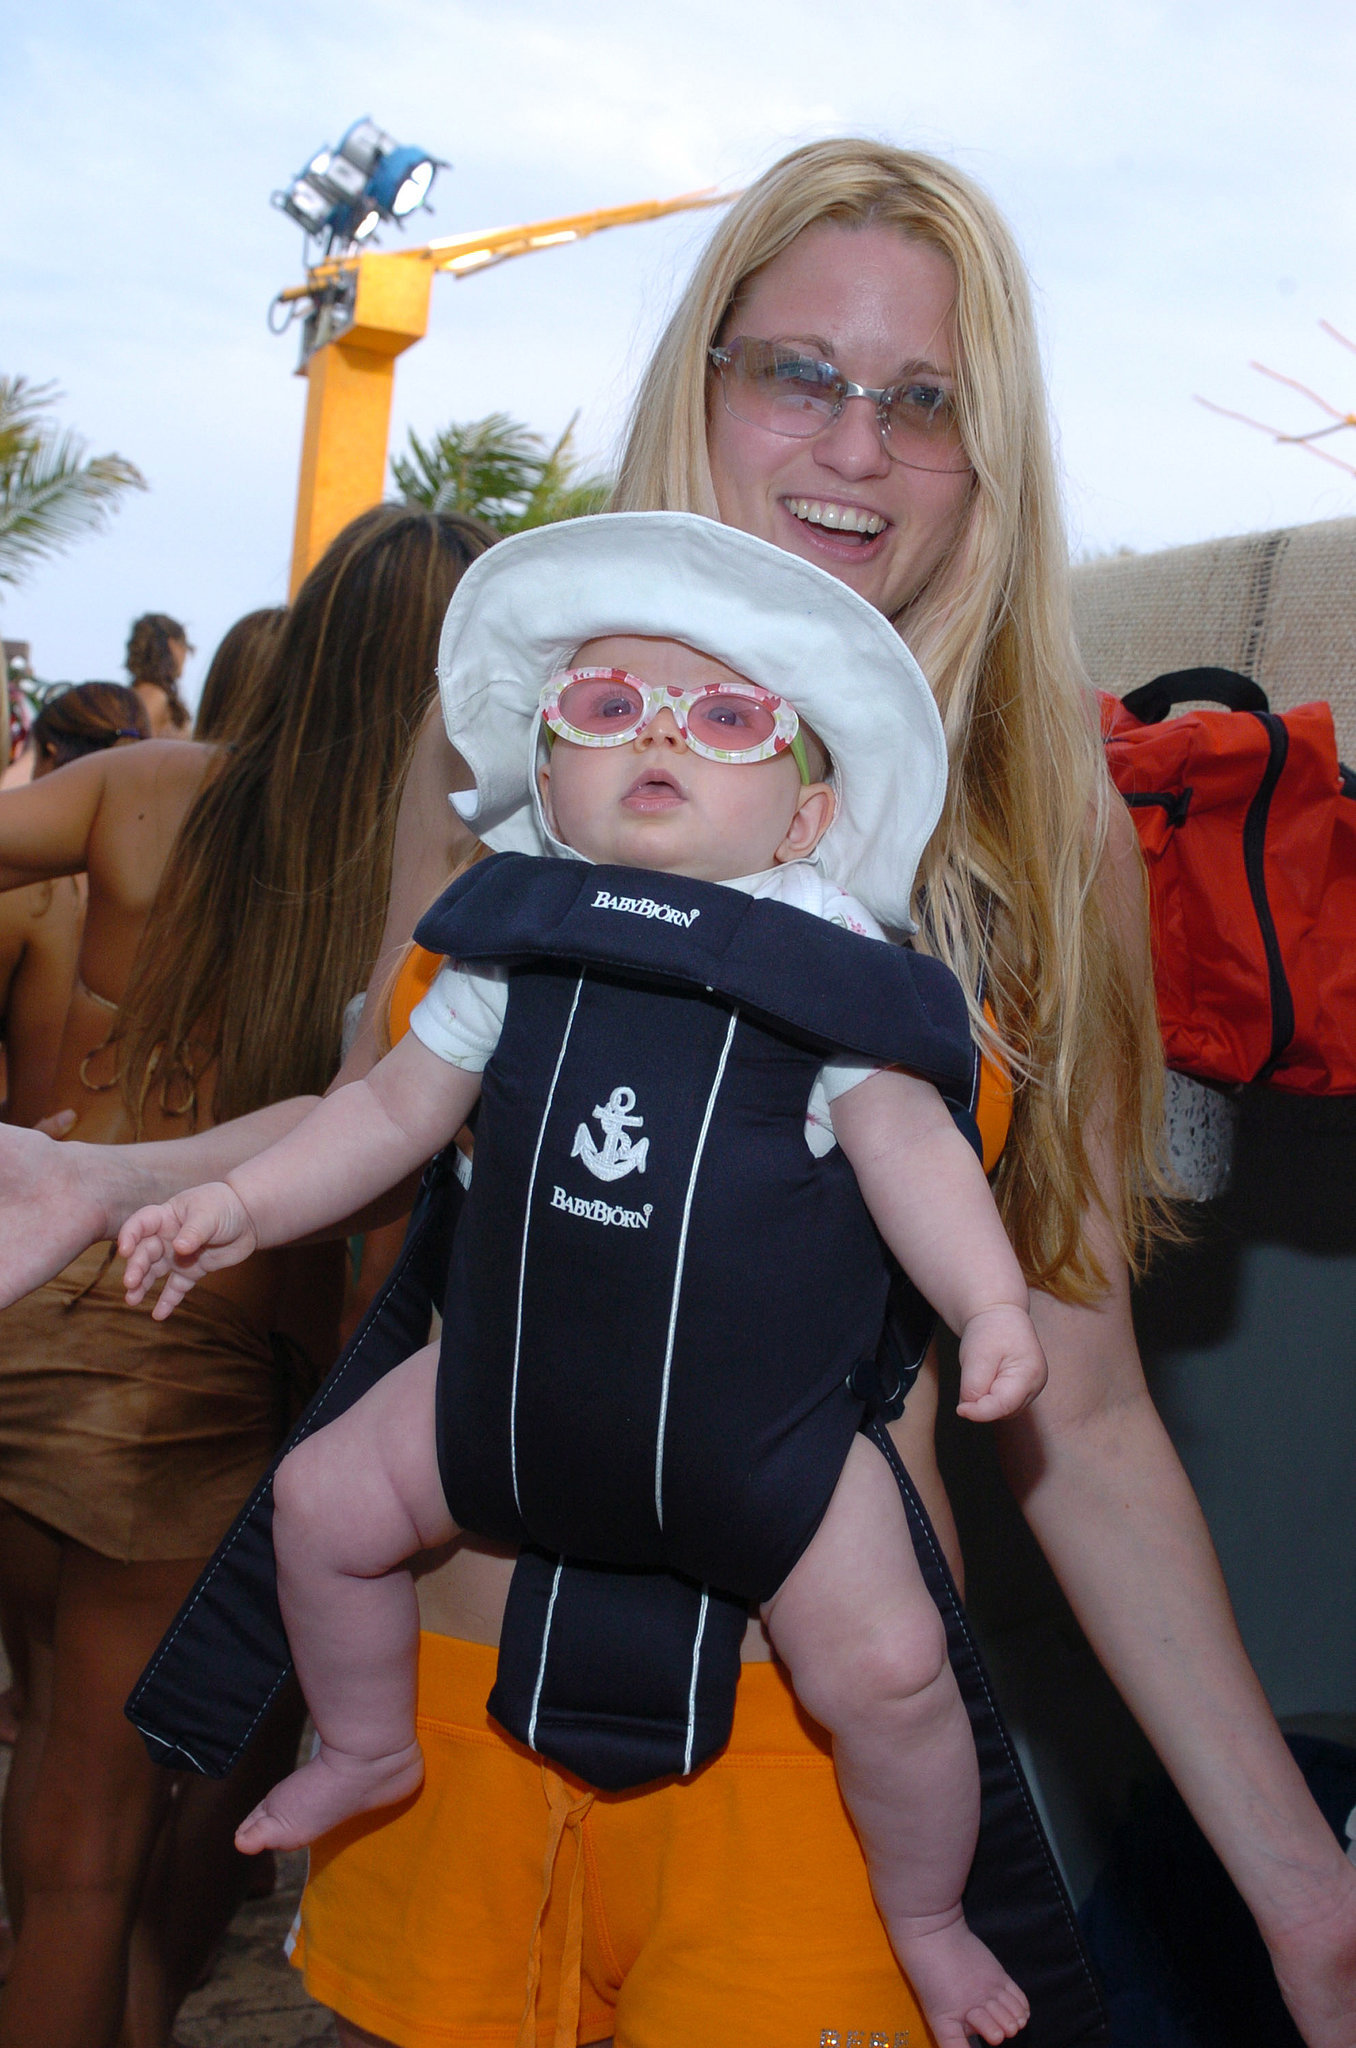 2004: This woman brings her baby to Spring Break in Cancun.